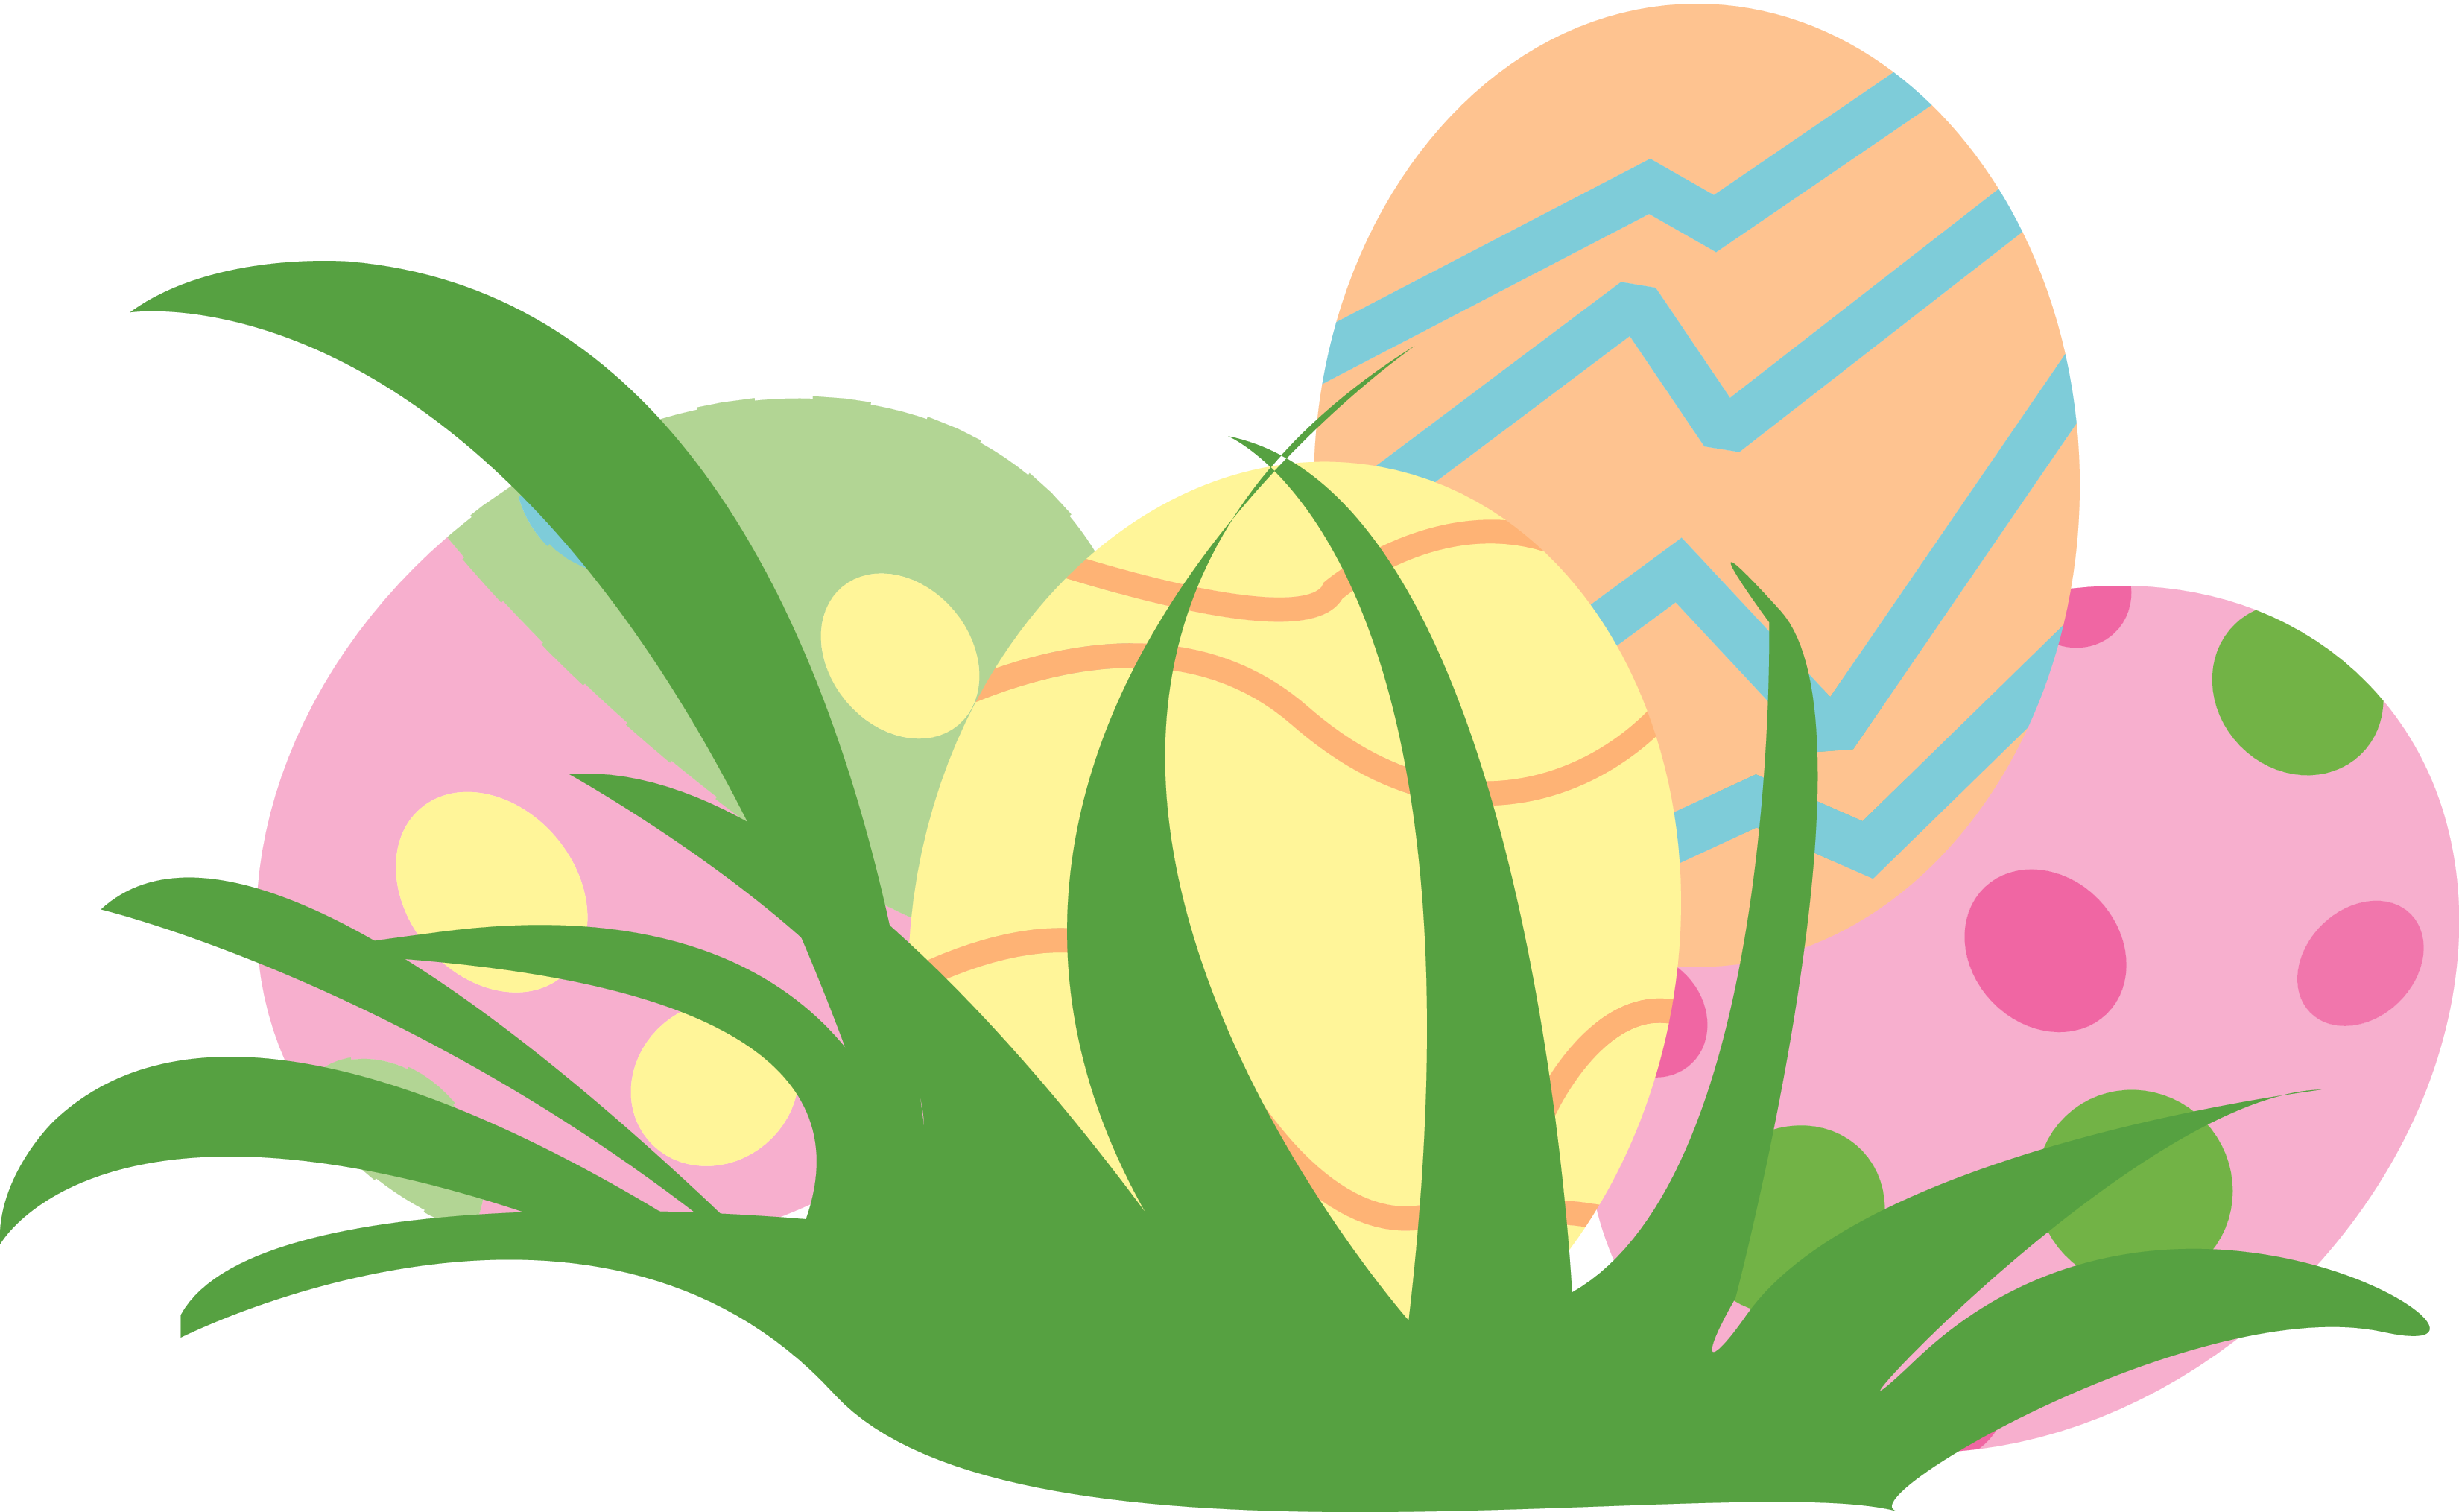 Google free clipart easter egg hunt png freeuse Pin by denise ernst on Easter/Spring | Pinterest | Easter and Cards png freeuse